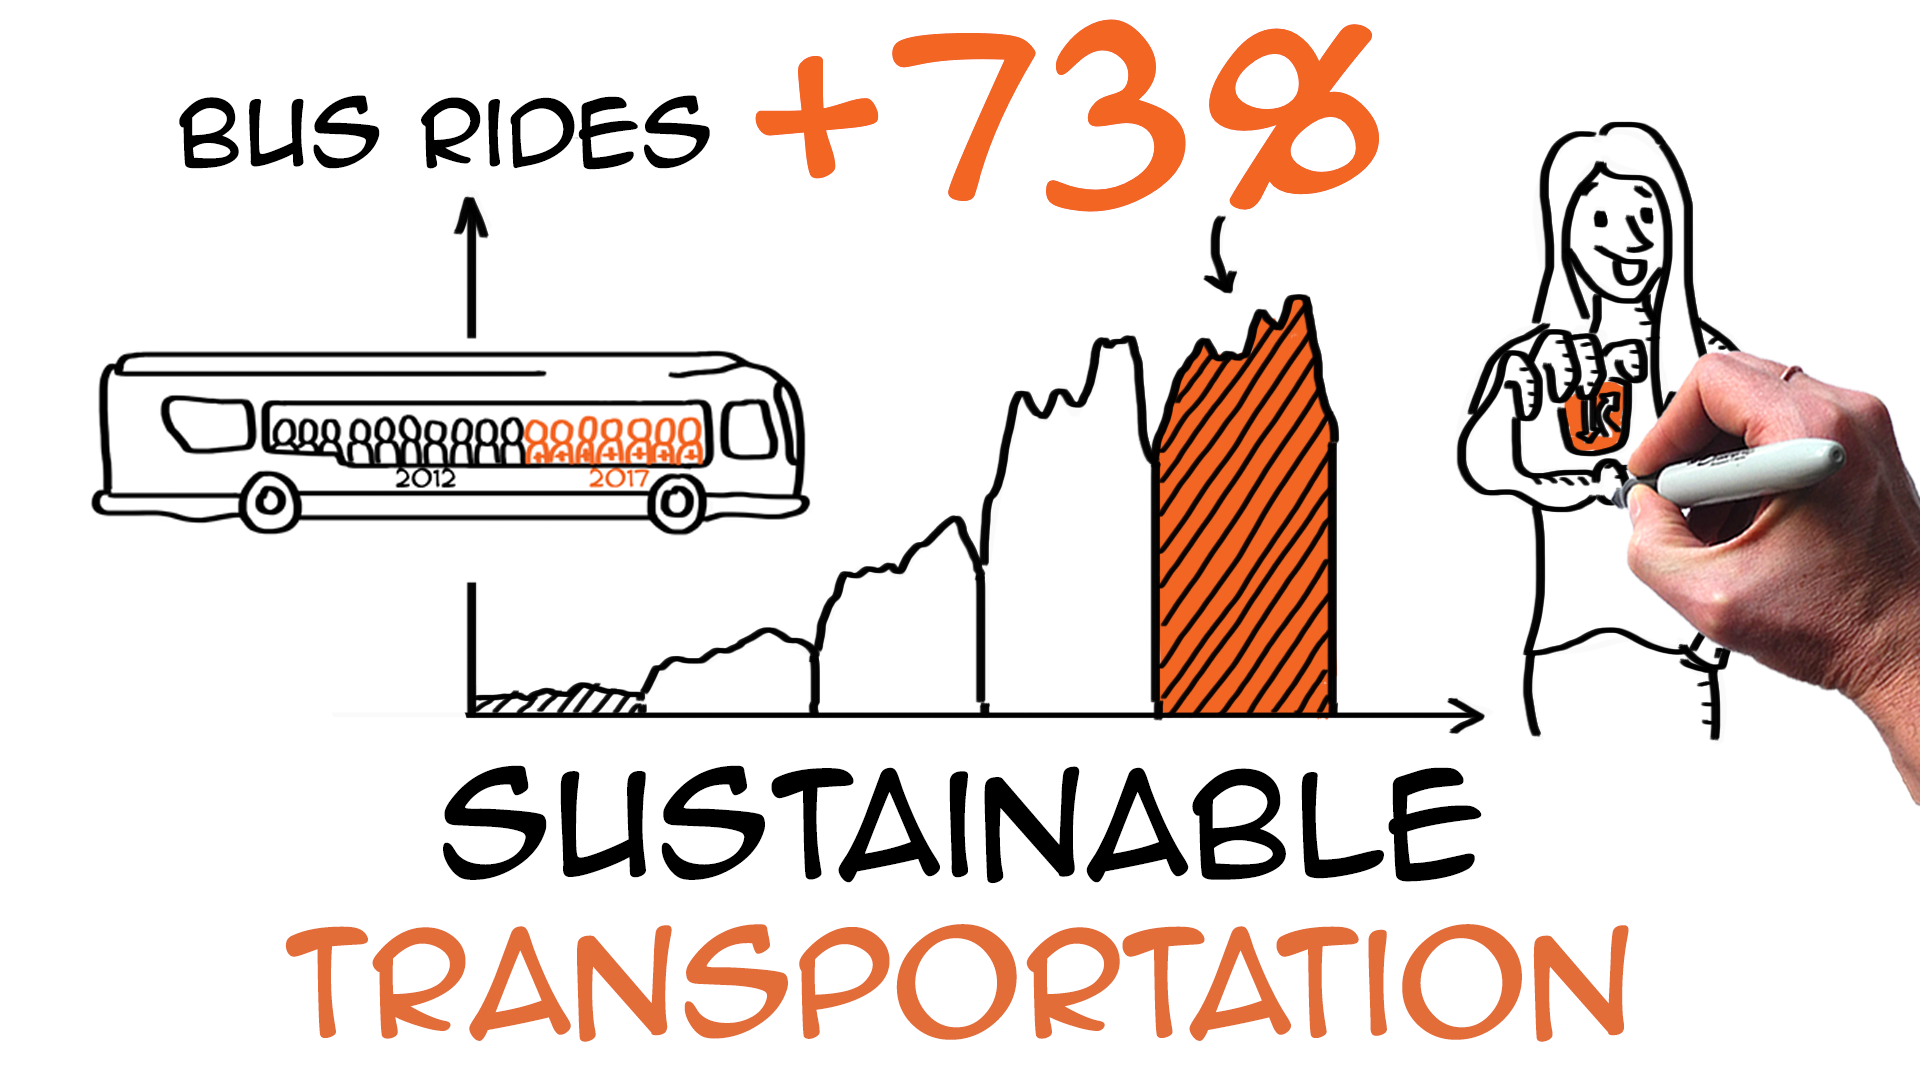 Sustainable transportation: increase bus ridership by 70% in your city!